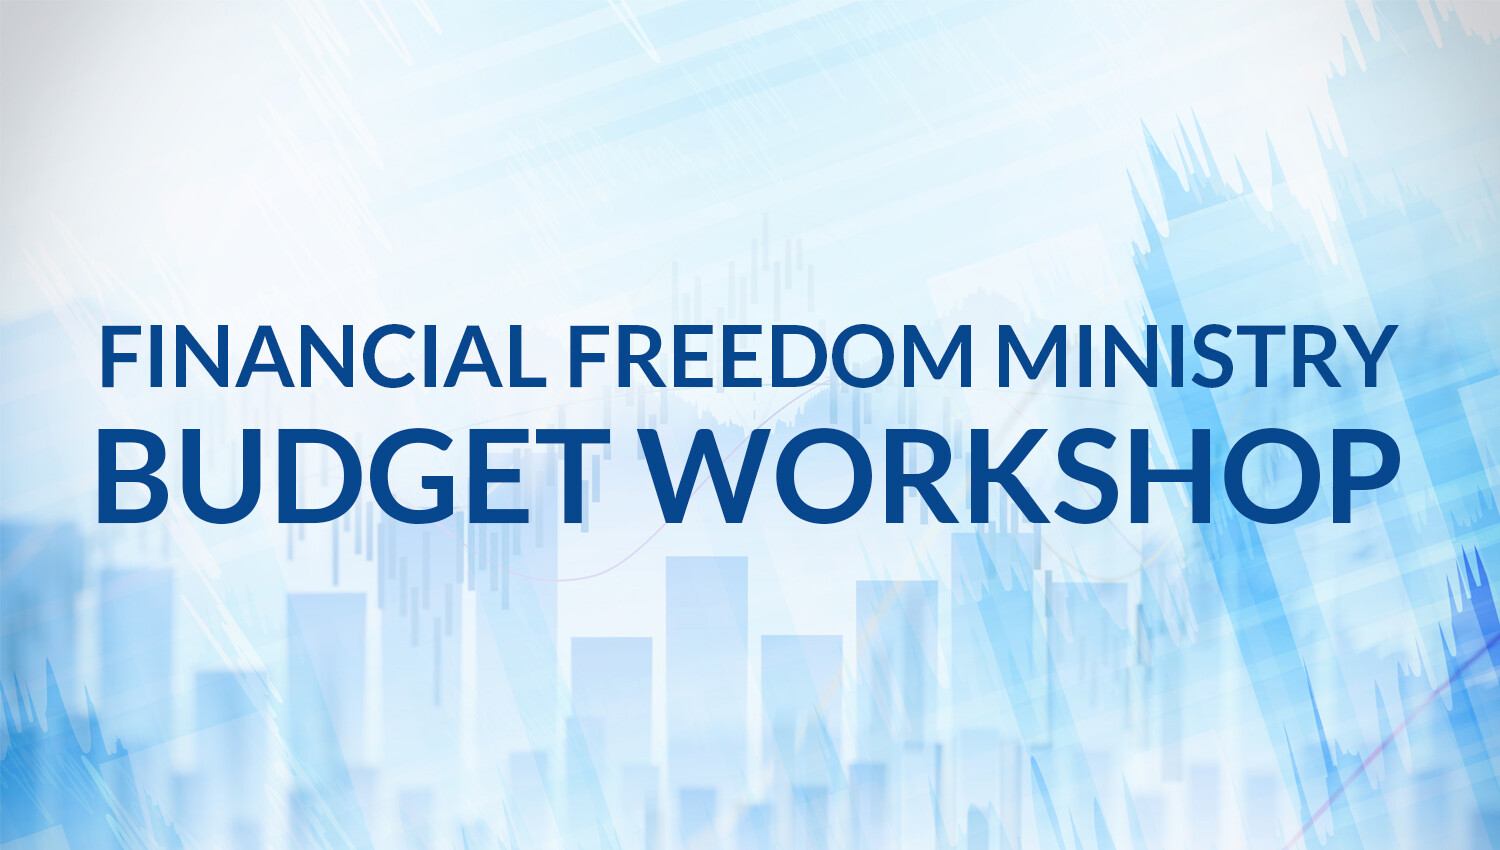 Financial Freedom Ministry Budget Workshop